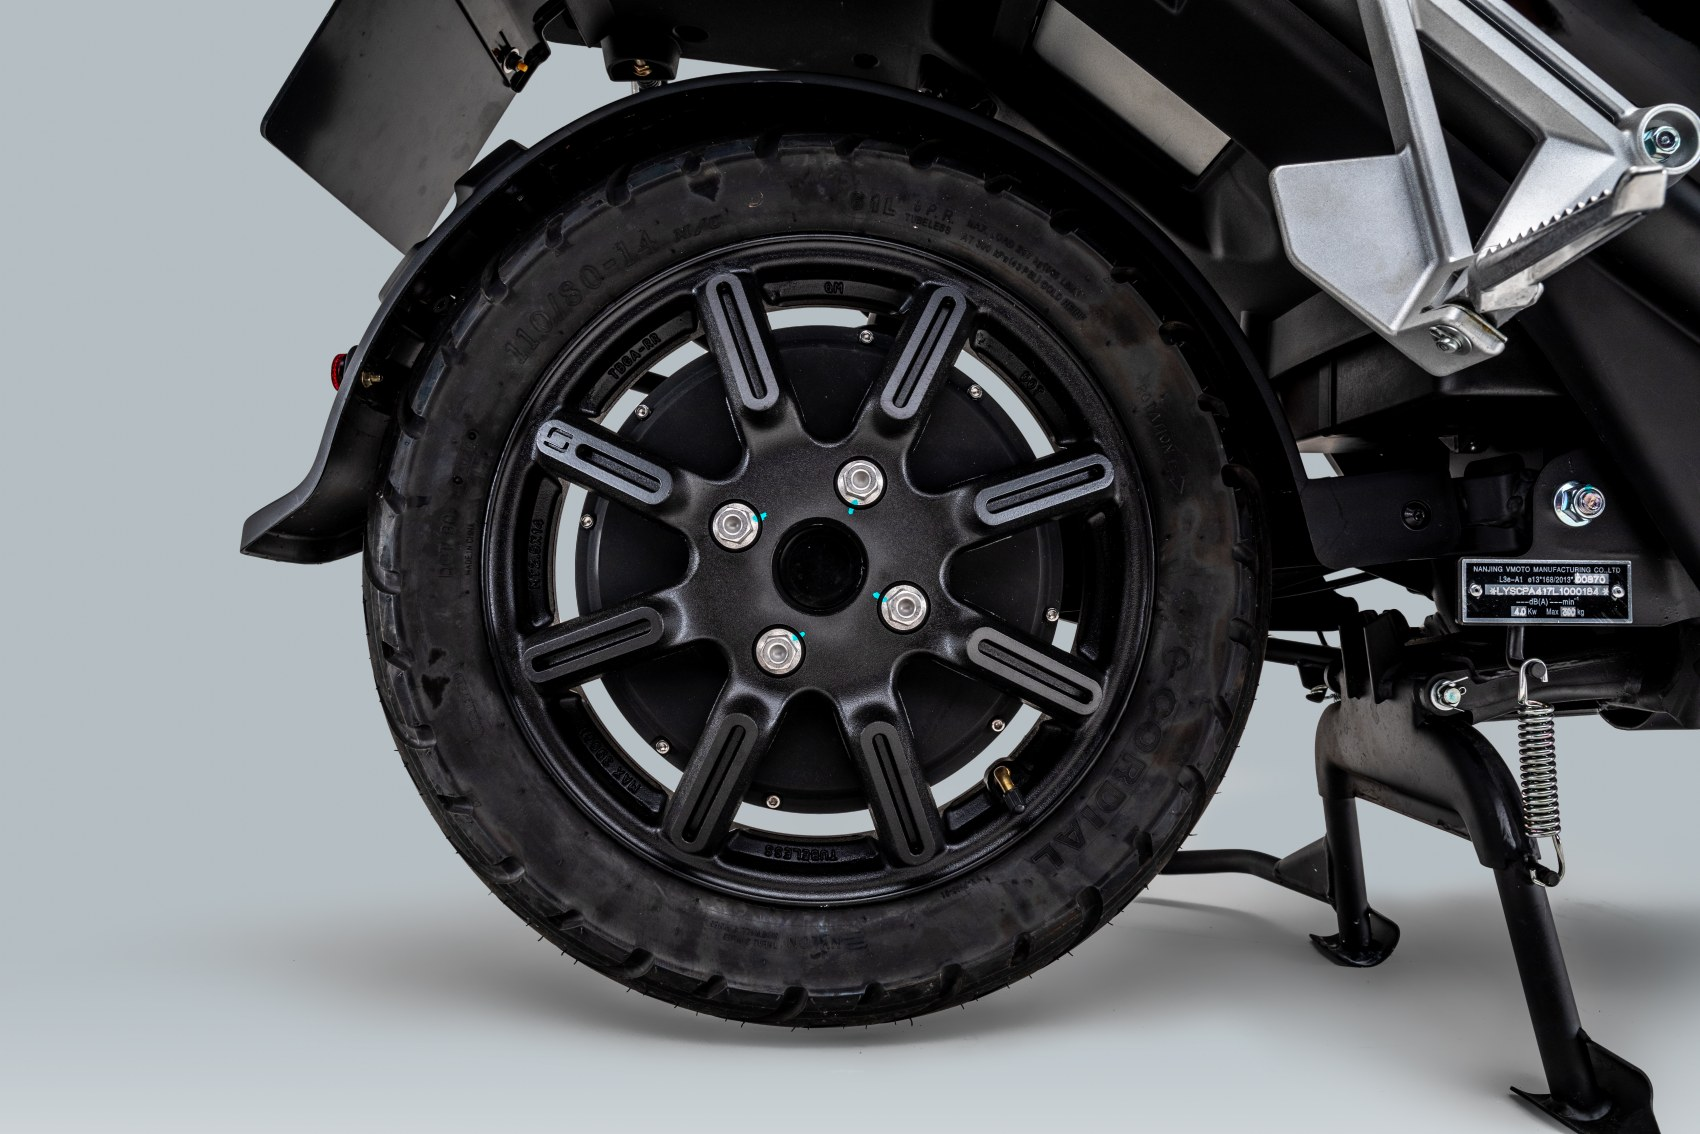 Super Soco CPx electric scooter motor and rear wheel